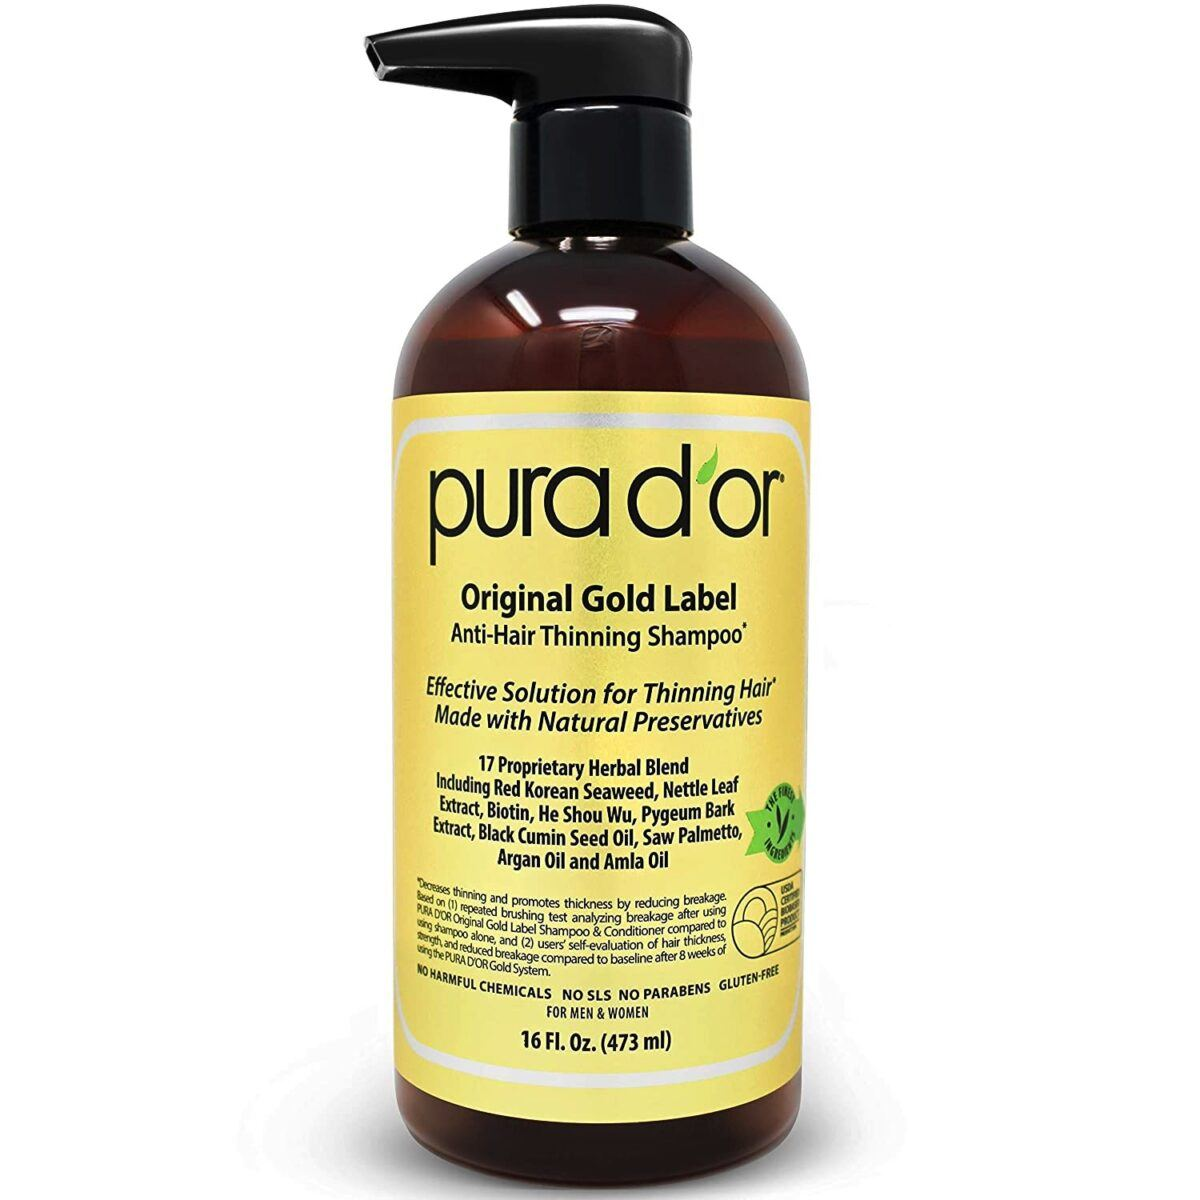 PURA D'OR Original Gold Label Anti-Thinning Shampoo Review